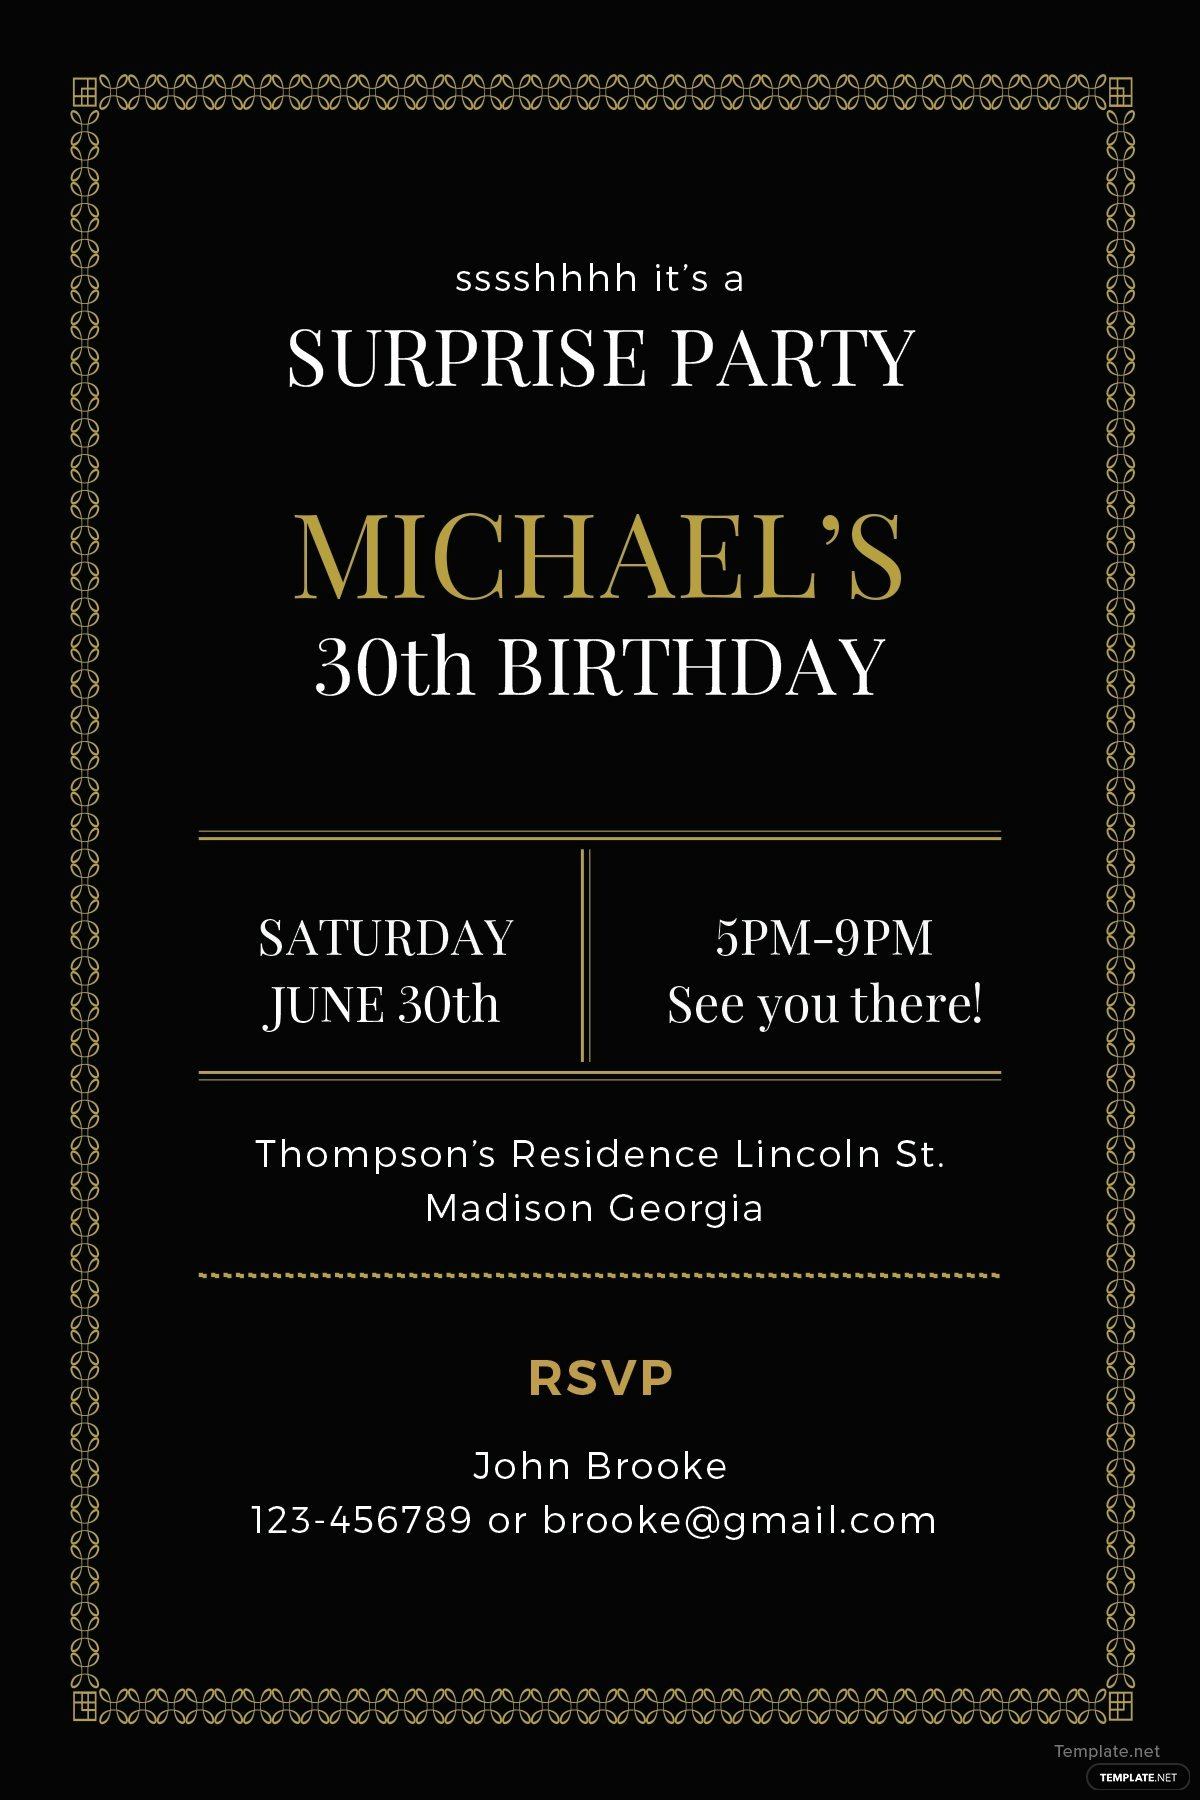 Surprise Party Invitation Templates Awesome Free Surprise Party Invitation Template In Adobe Illustrator